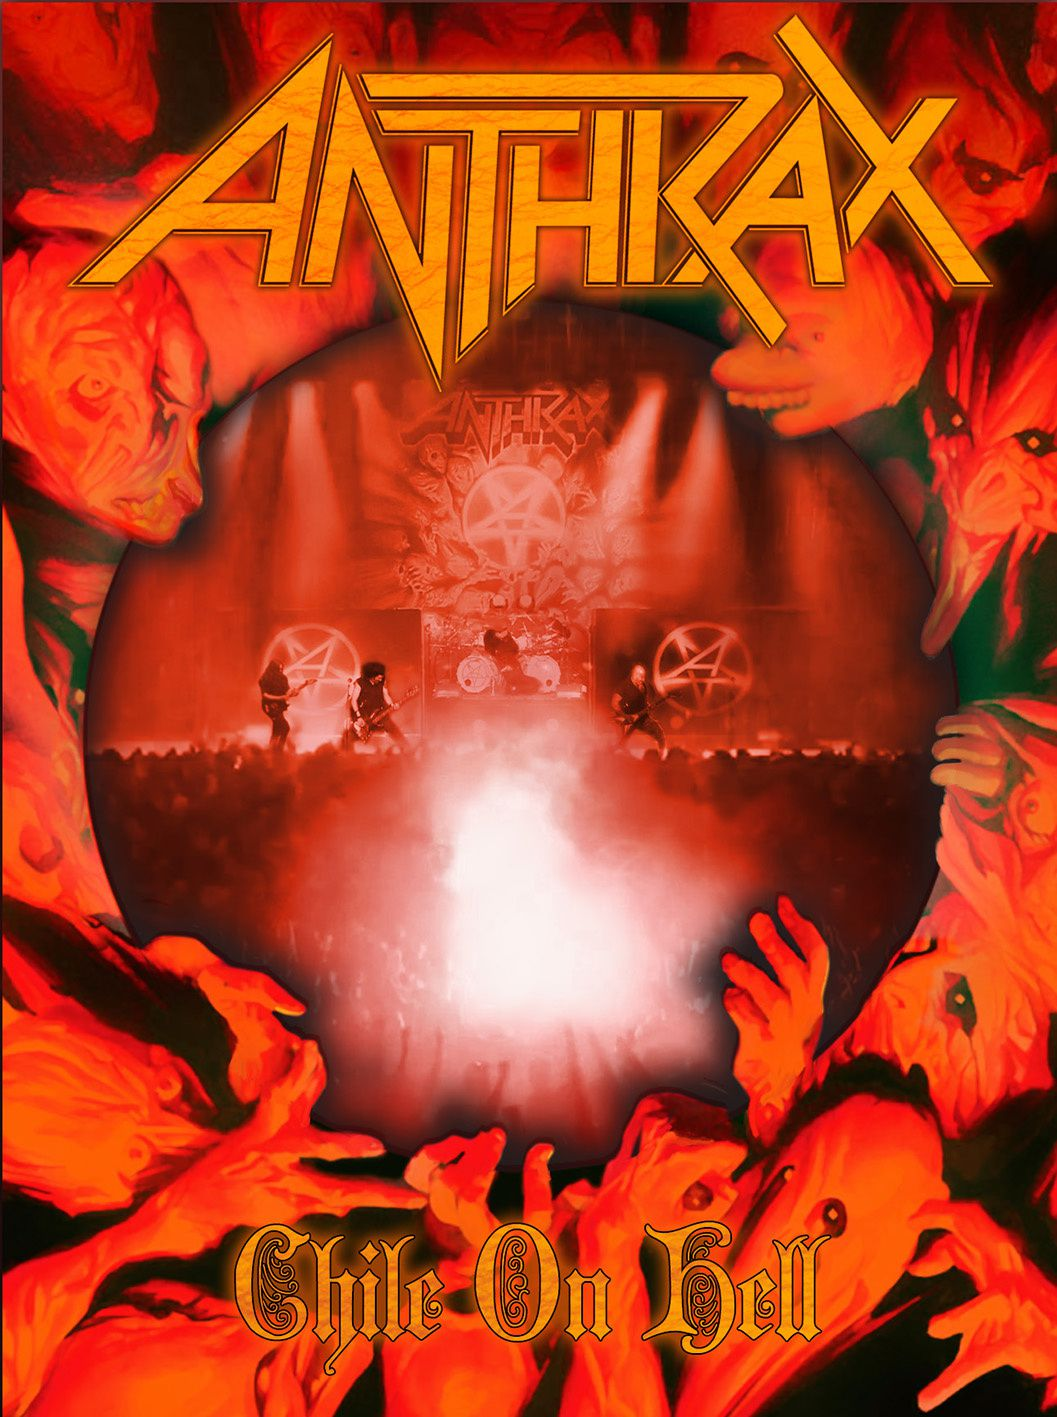 New ANTHRAX DVD in October